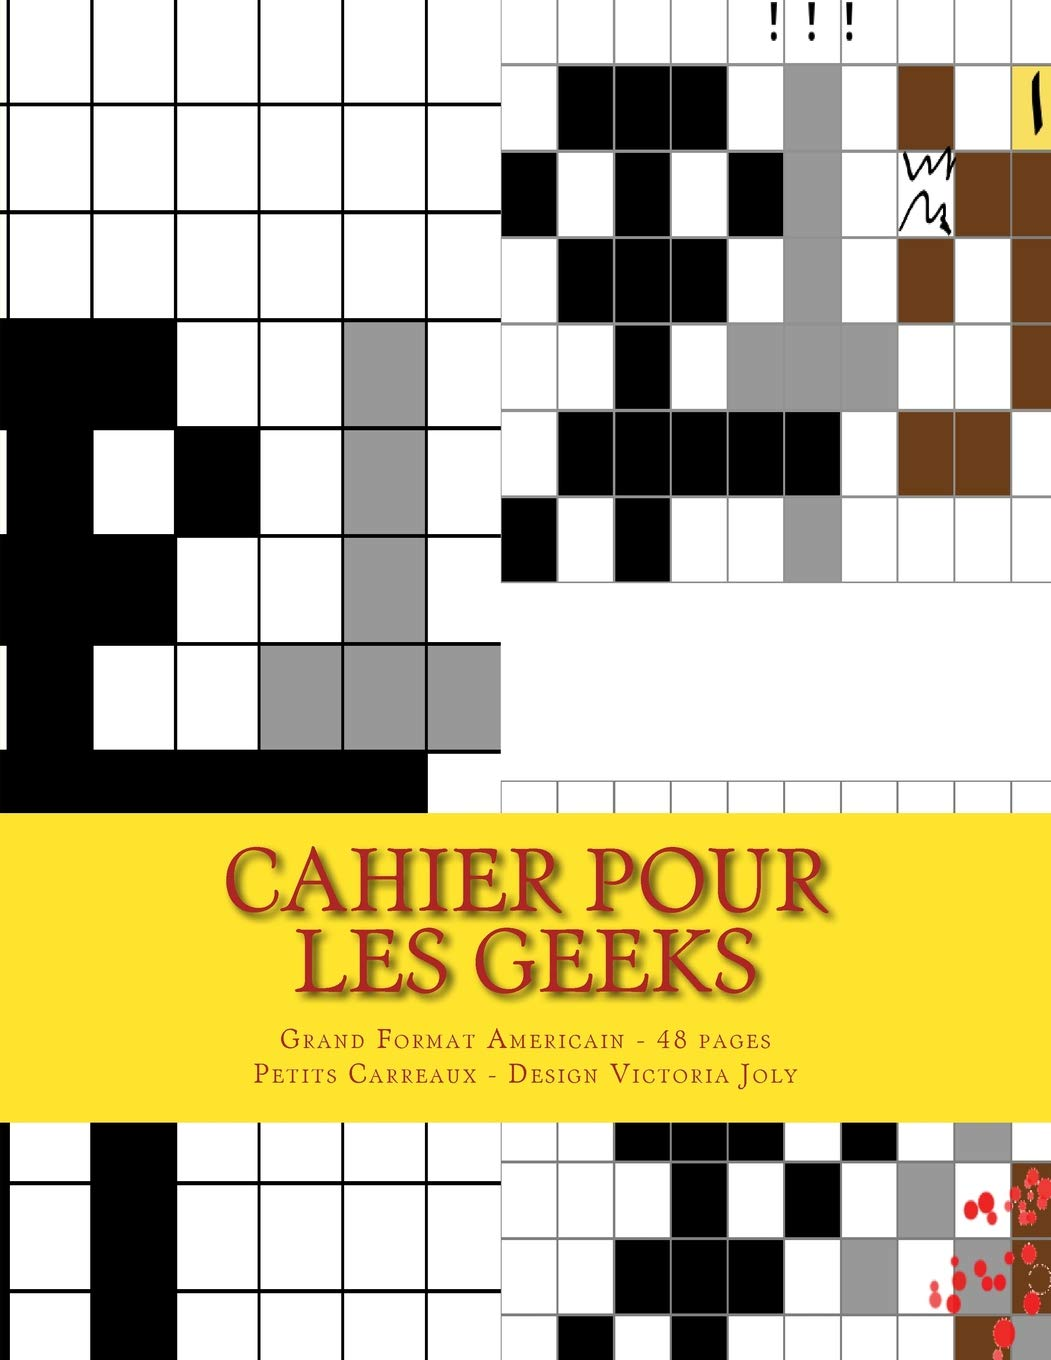 Cahier Pour Les Geeks Grand Format Americain 48 Pages